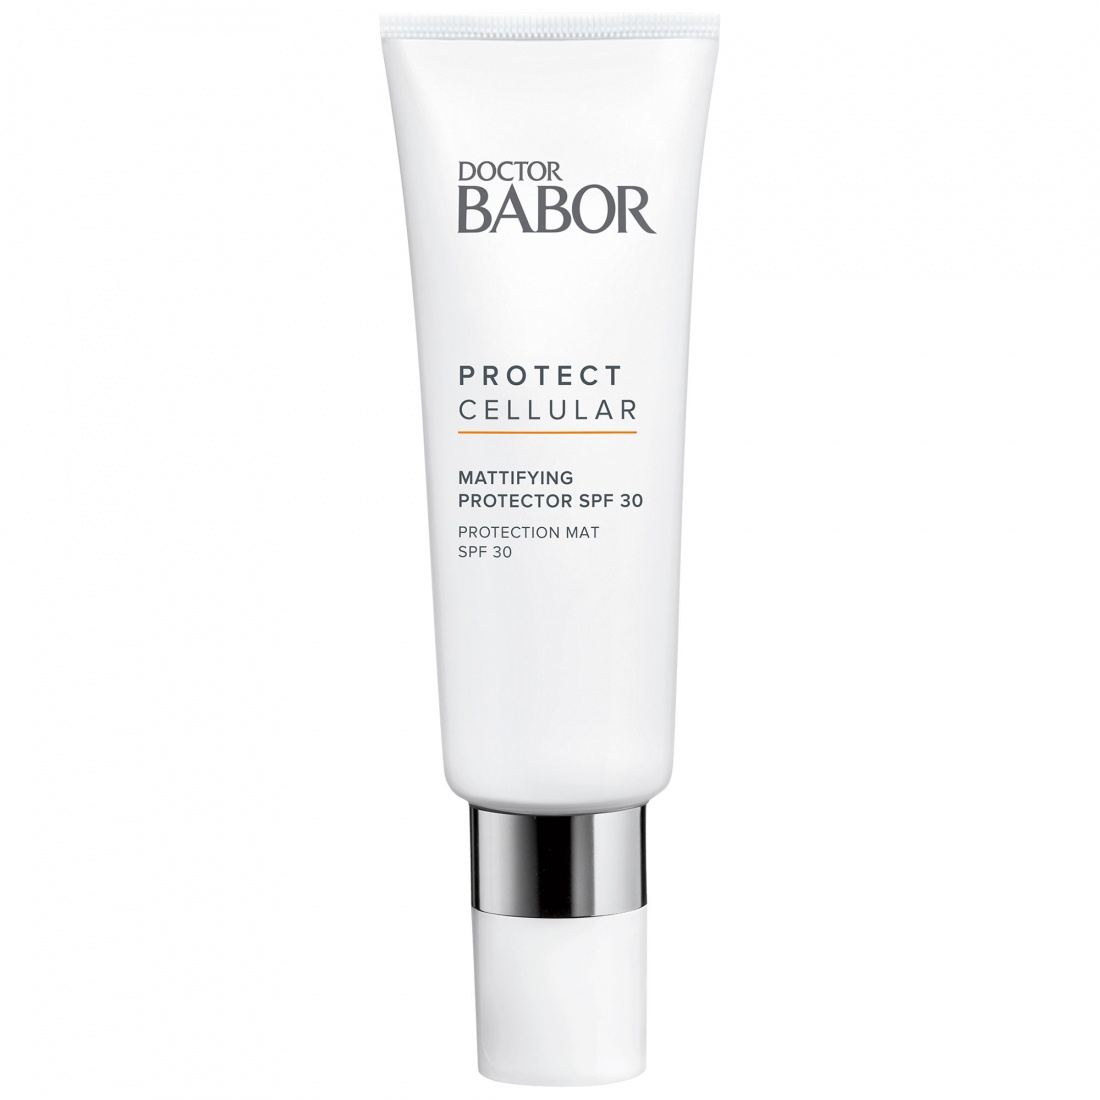 Doctor Babor Face Protecting Fluid SPF30